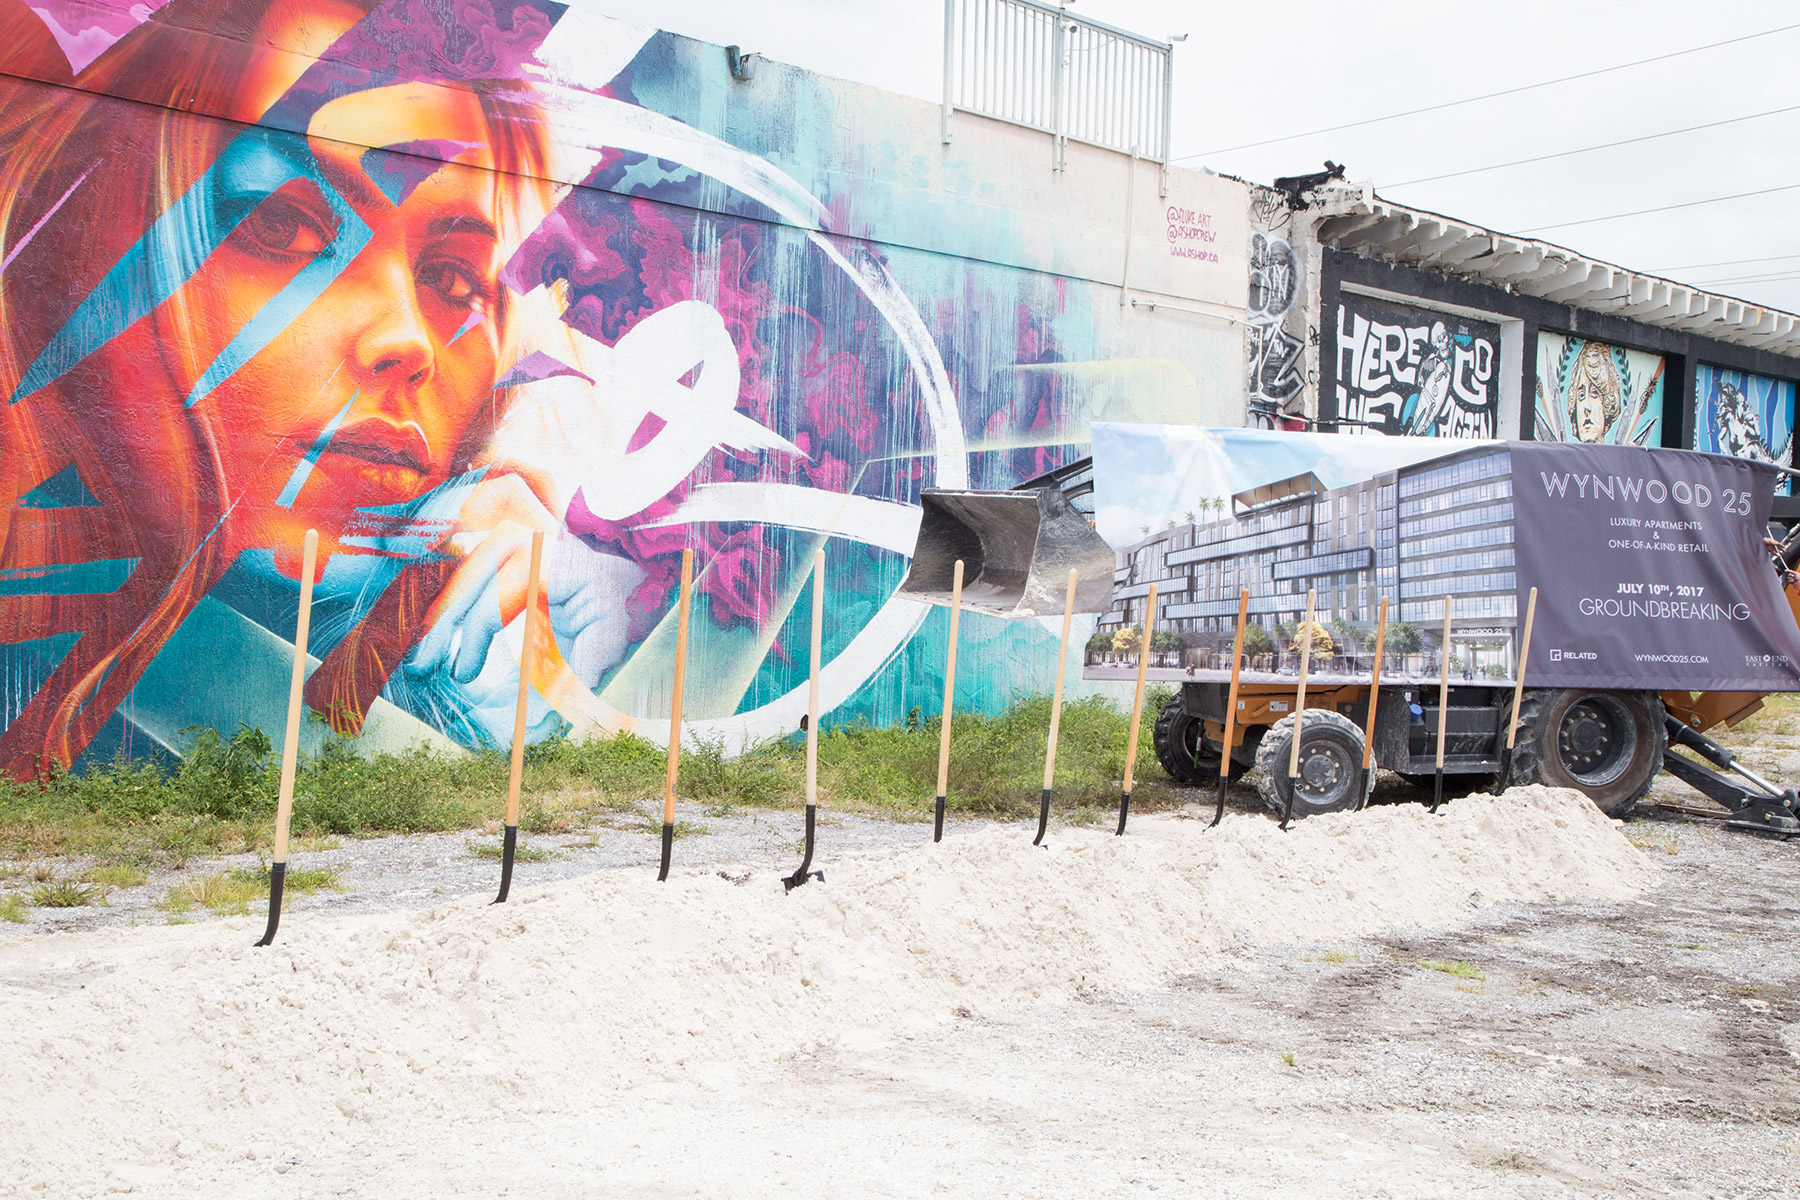 wynwood 25 breaks ground with 289 apartments headed to wynwood